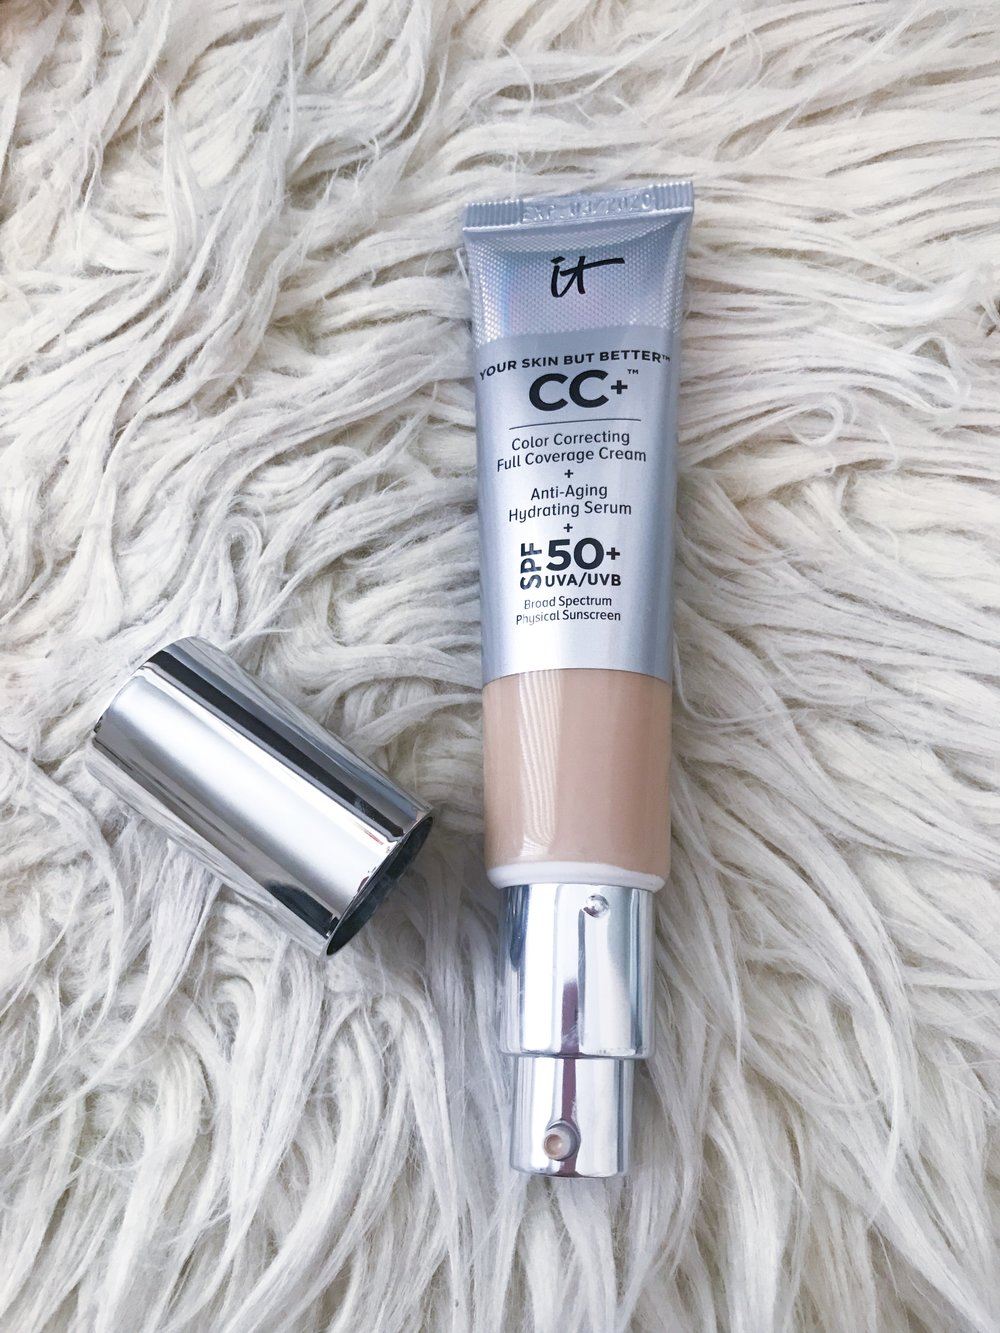 IT Cosmetics CC Cream $38 - I absolutely love using this CC cream (tinted moisturizer) as a foundation in the summer!! It goes on so lightweight and natural while color correcting and providing SPF 50! (shade light)